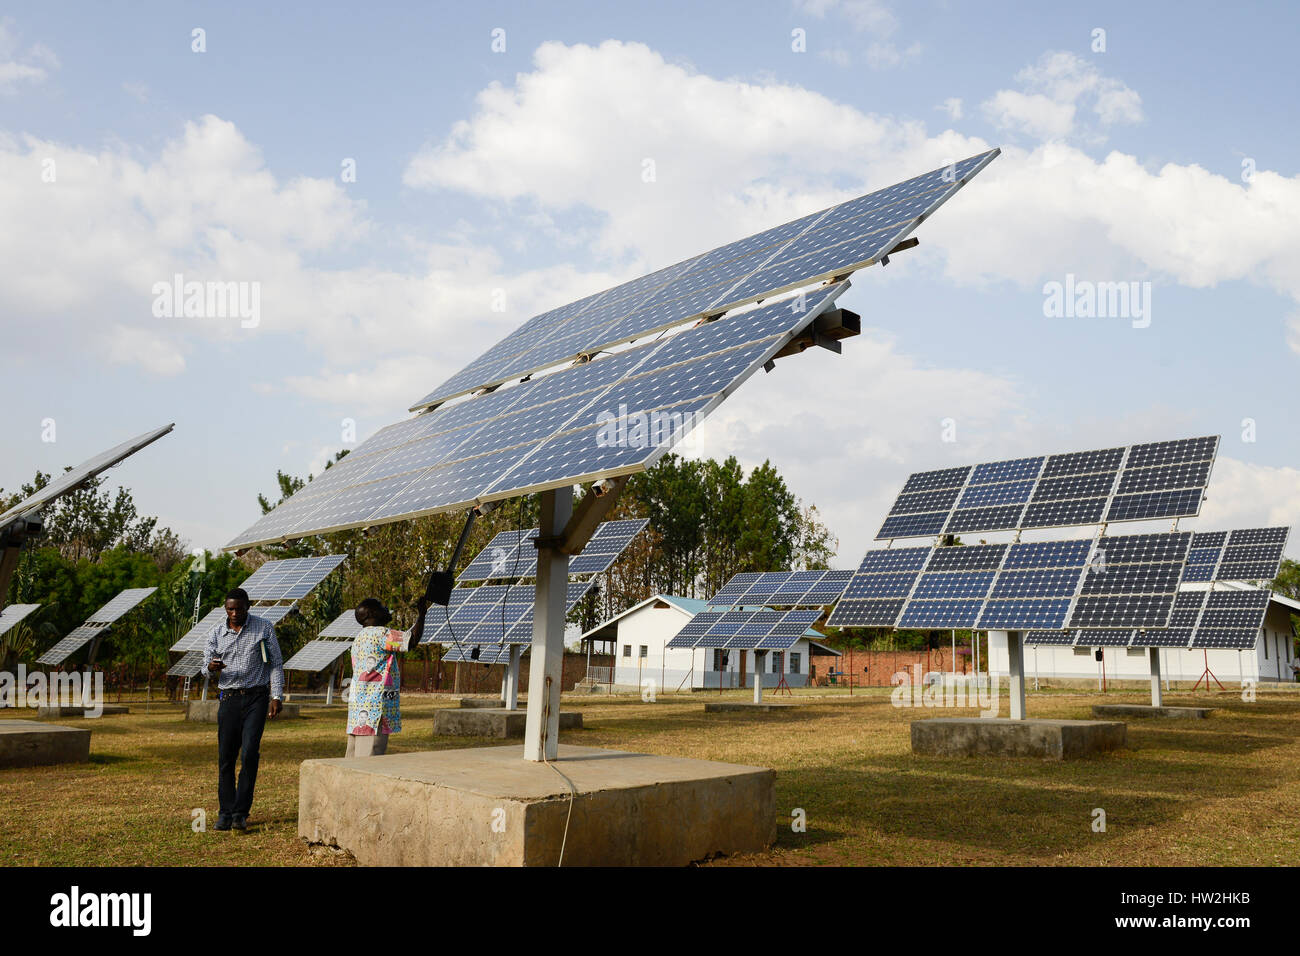 UGANDA, Arua, solar power, swingable solar panels for power supply of Radio station Radio Pacis / autarke Stromversorgung Stock Photo